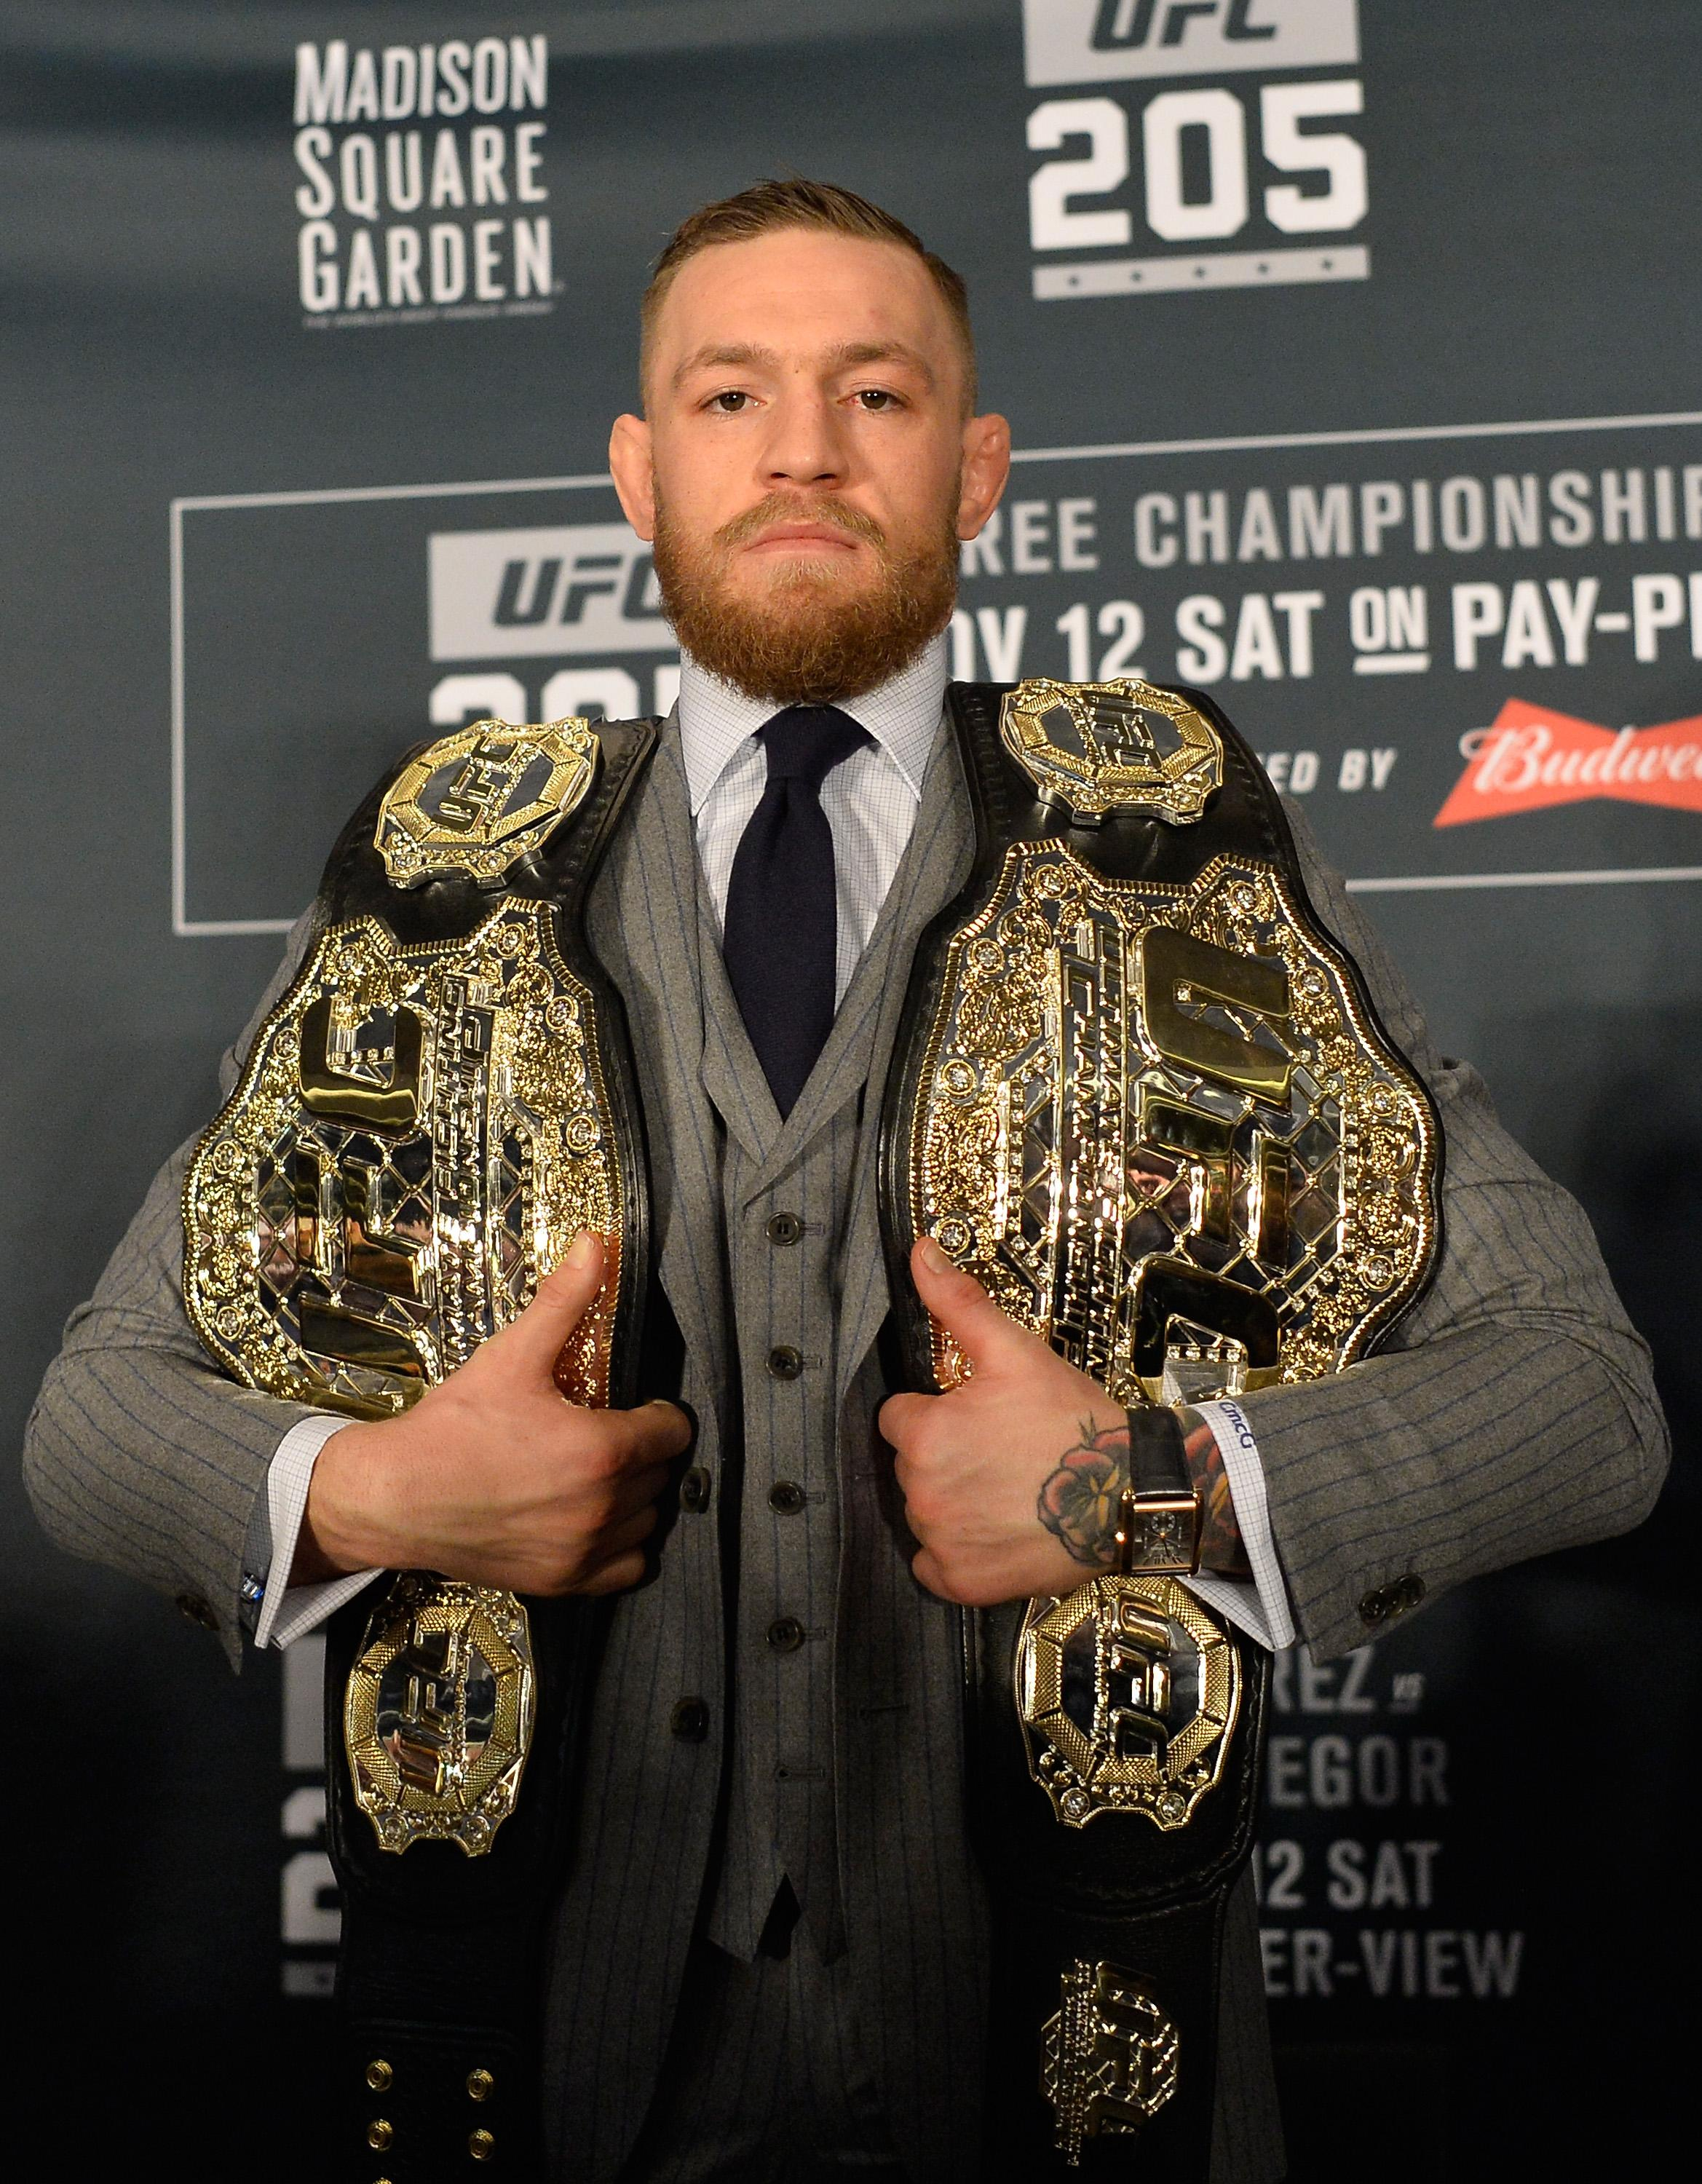 Conor McGregor held the feather and lightweight beltssimultaneously